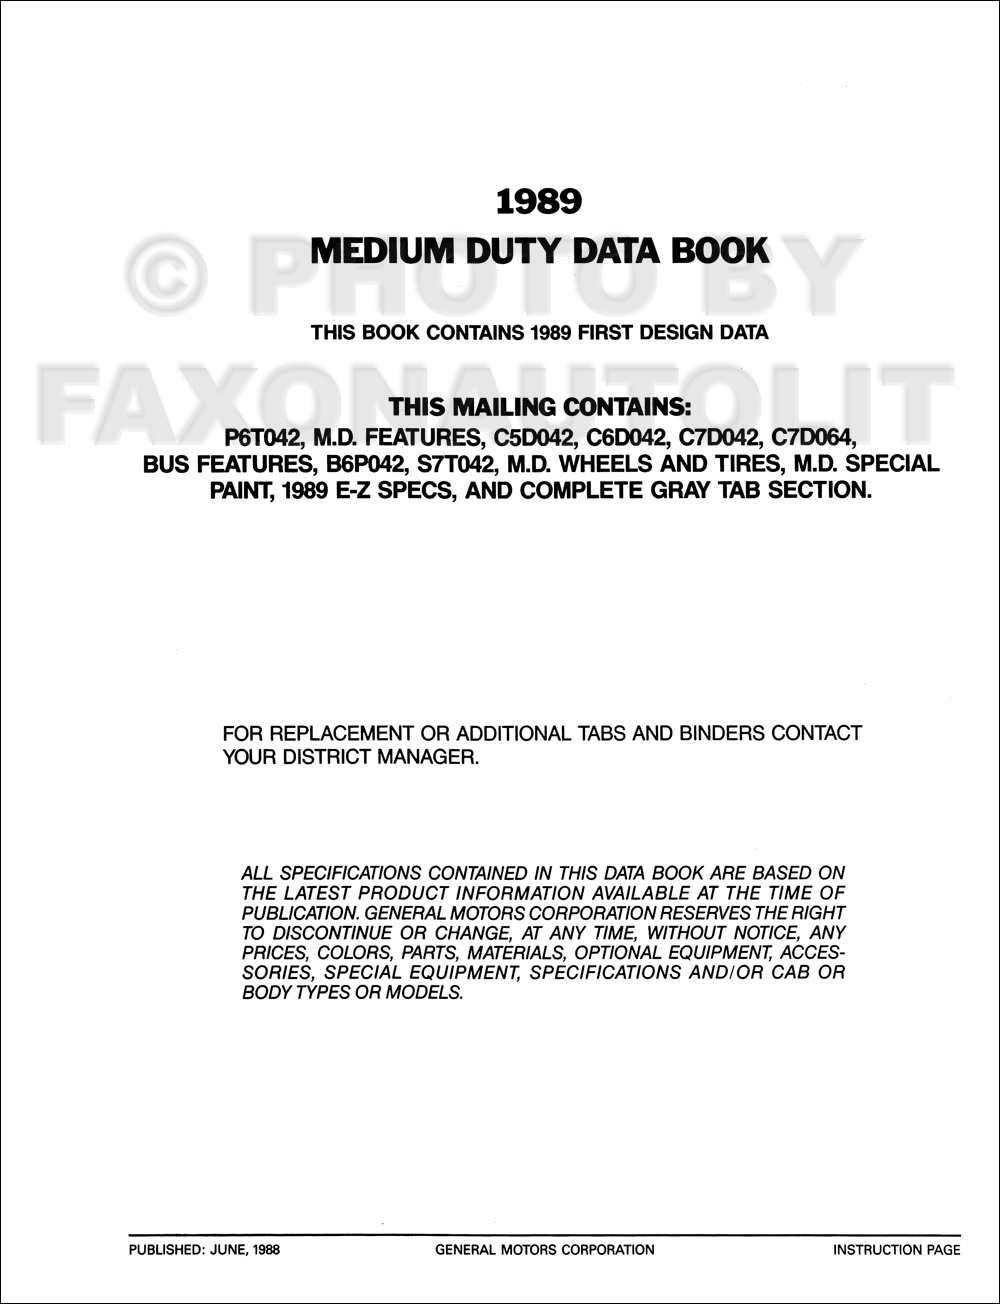 1989 GMC Medium Duty Data Book Original